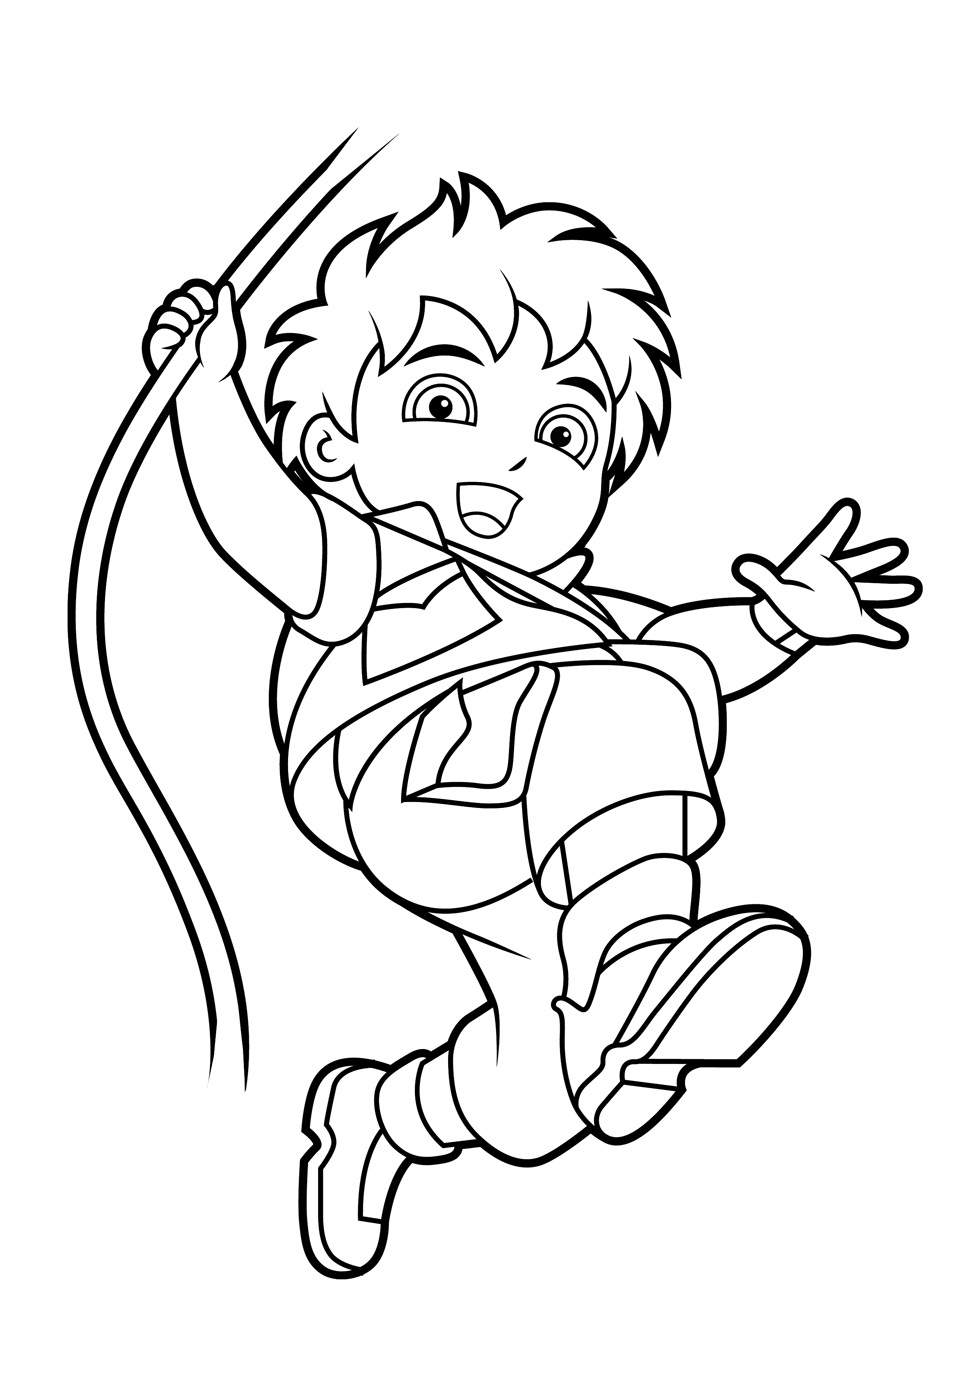 free coloring pages diego - photo#16